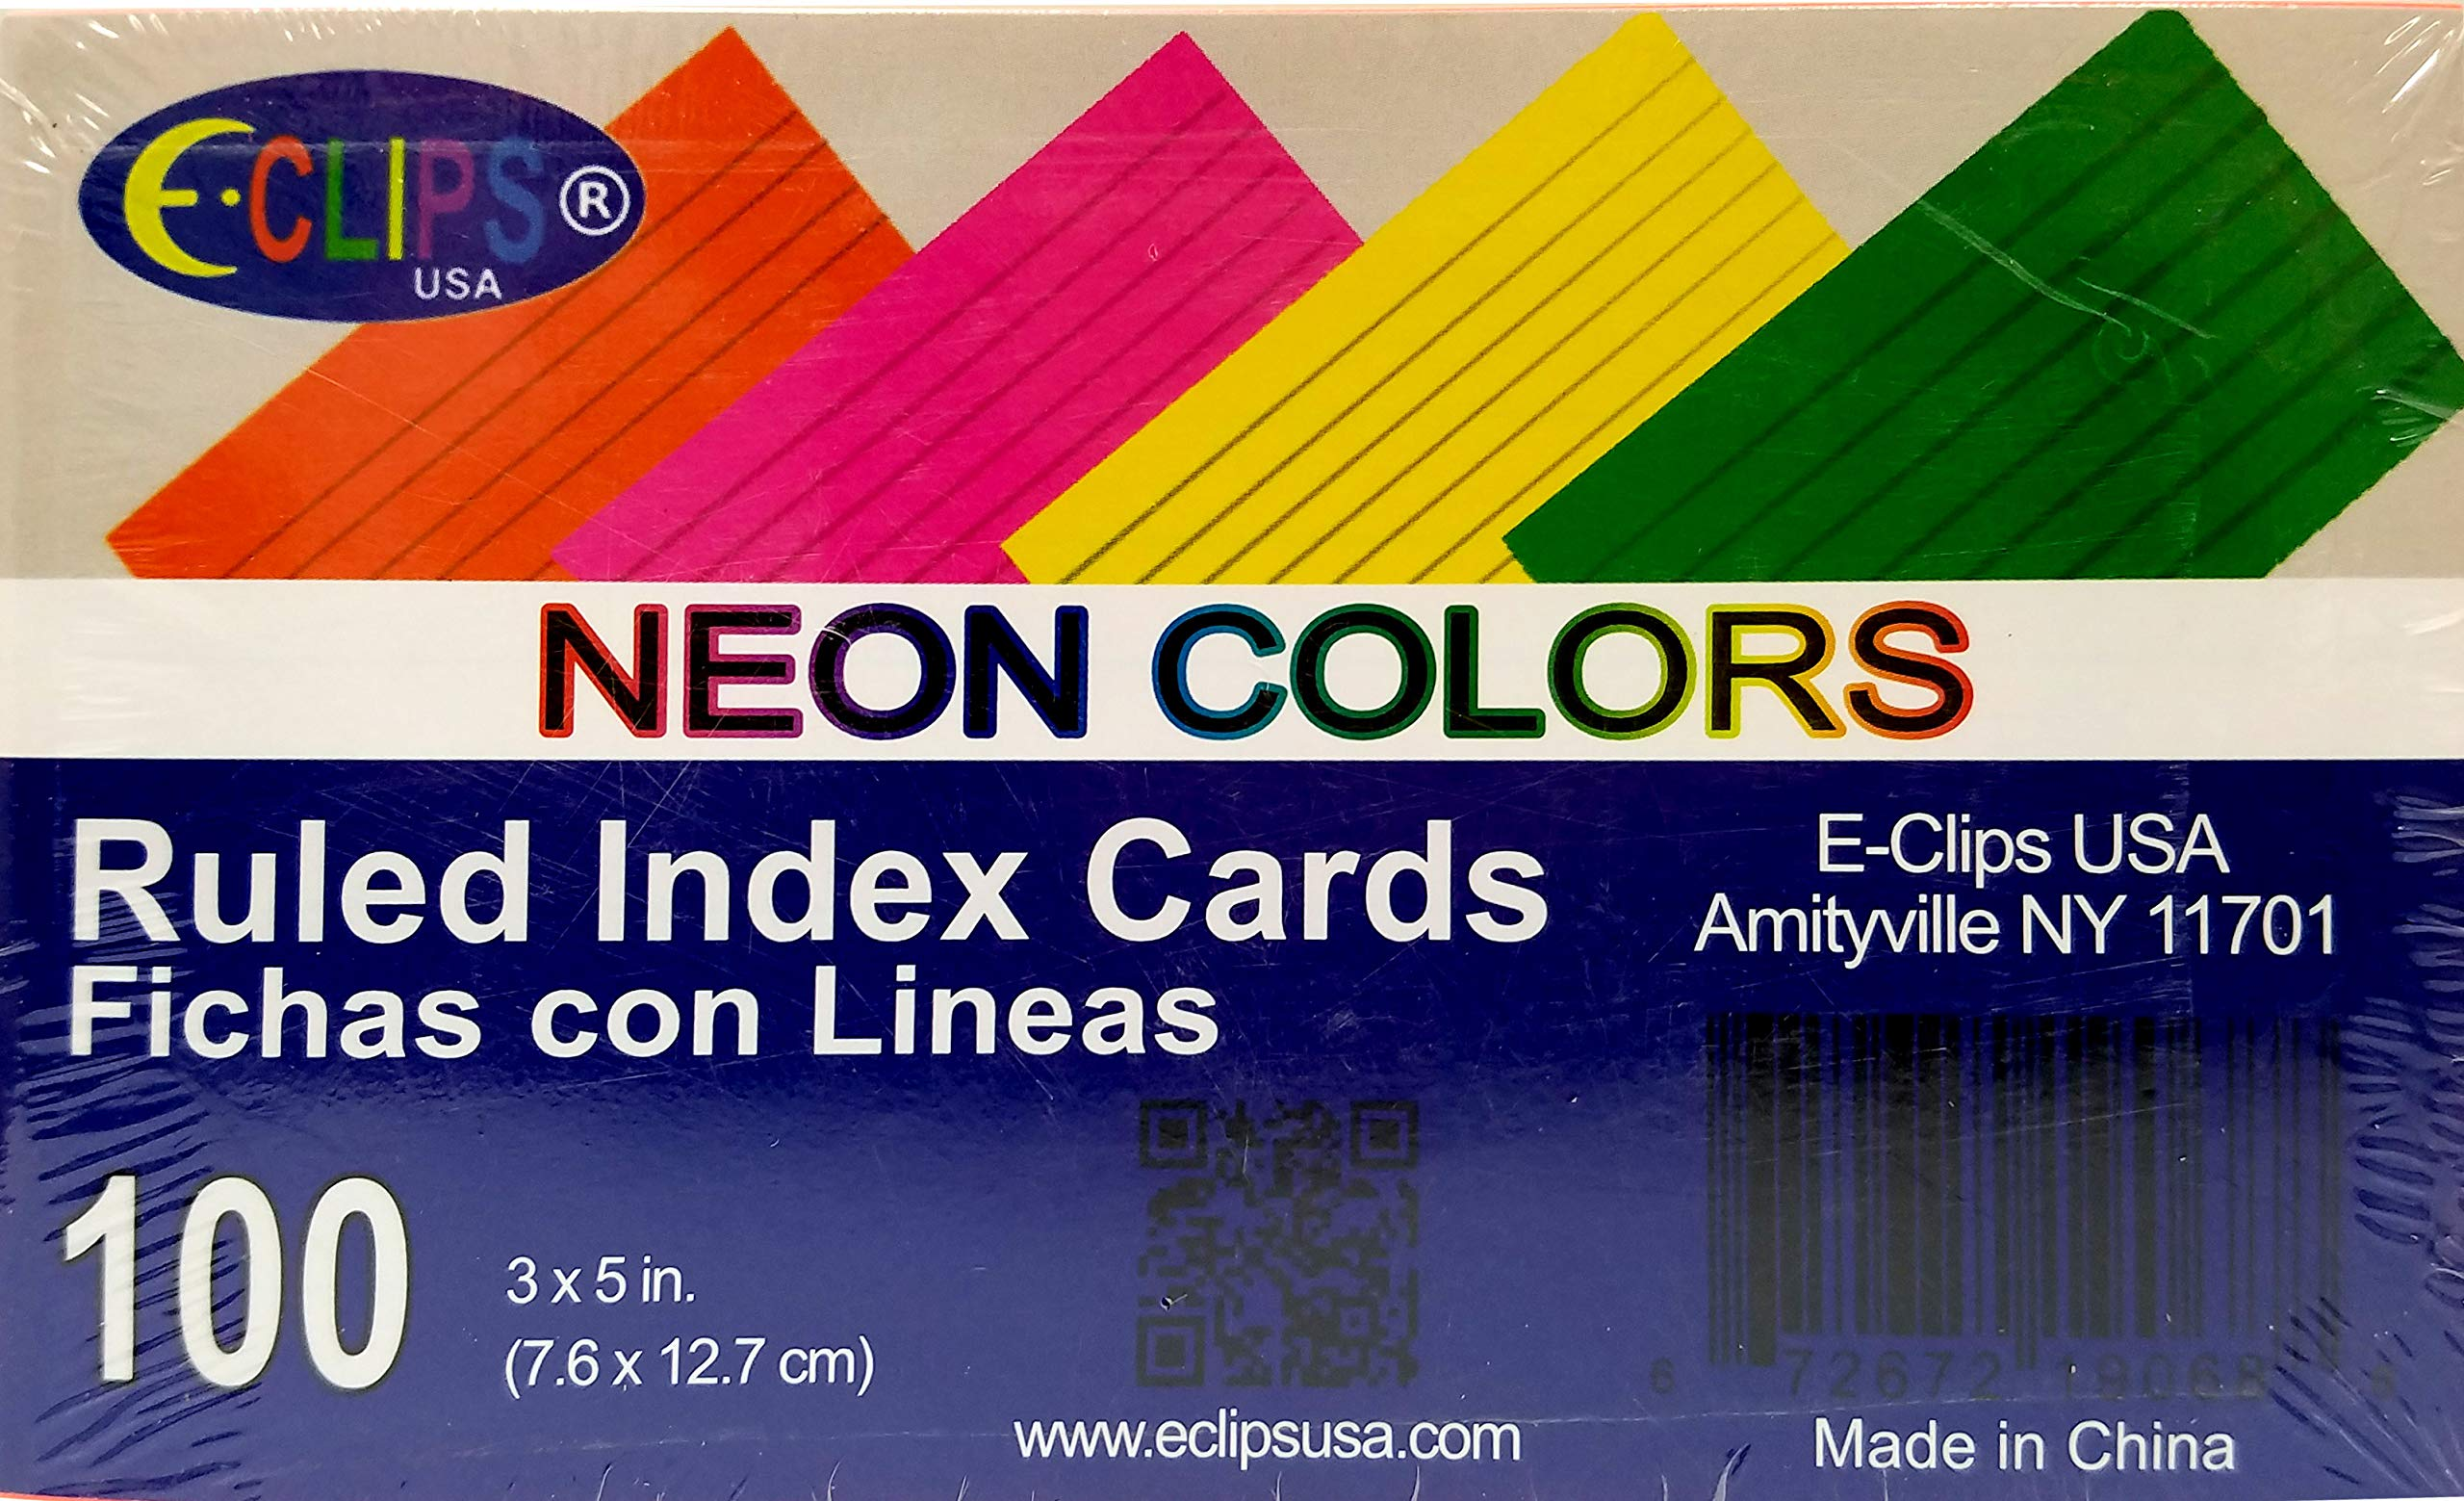 Index cards, 3''x 5'', 100 pk, Neon Colors, Ruled, Case Pack of 60, Ideal for Bulk Buyers